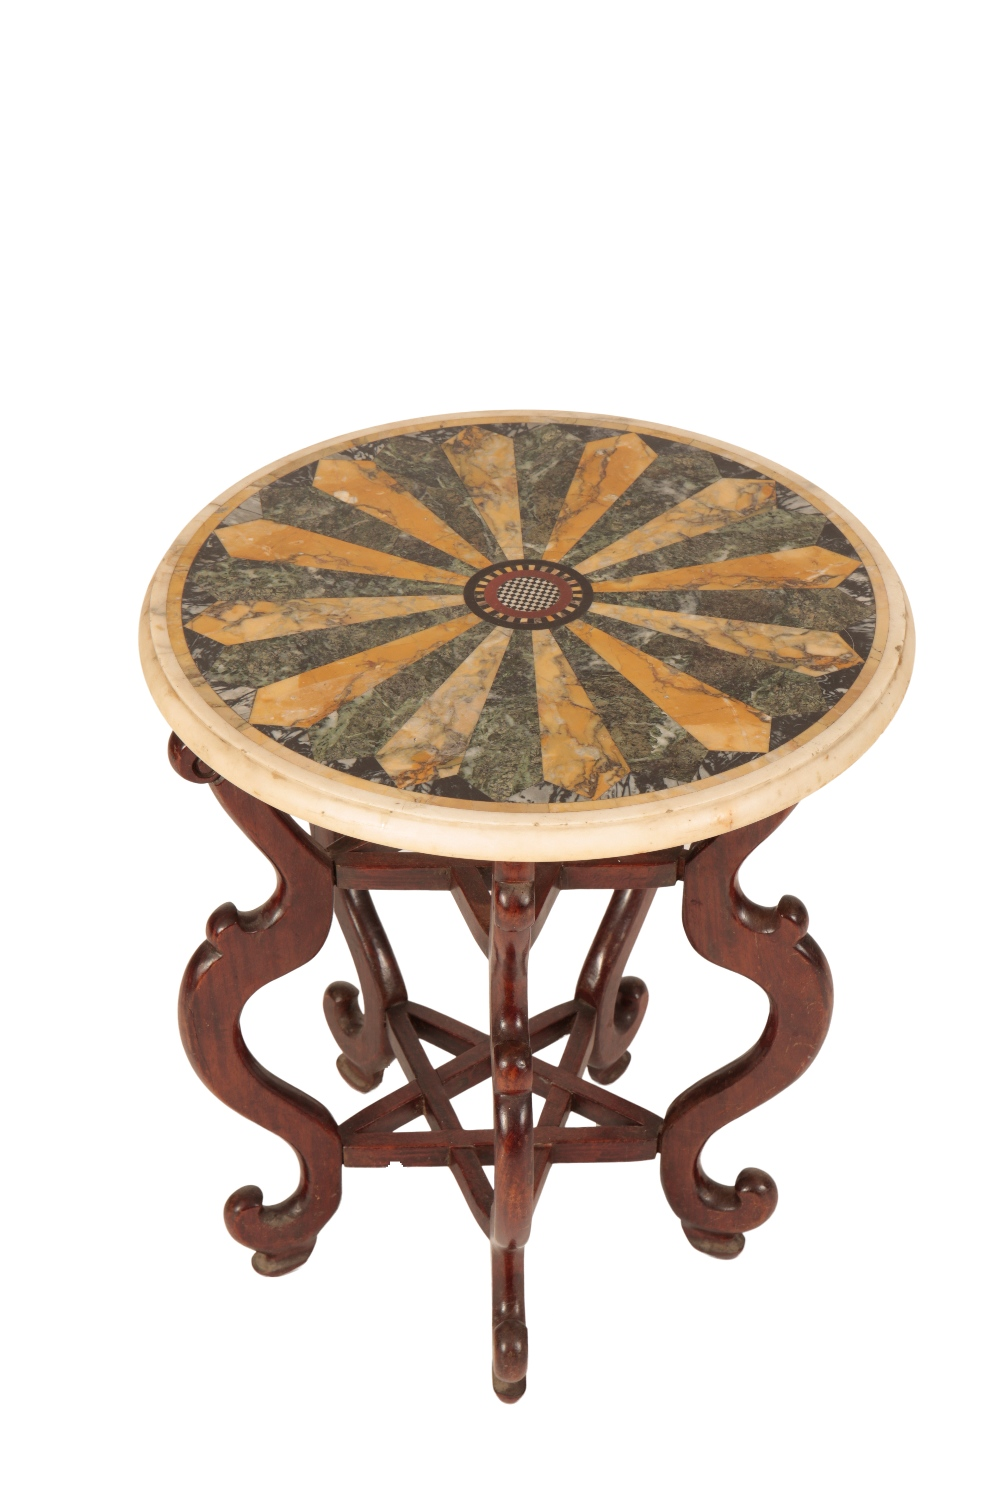 Lot 367 - HARDWOOD OCCASIONAL TABLE